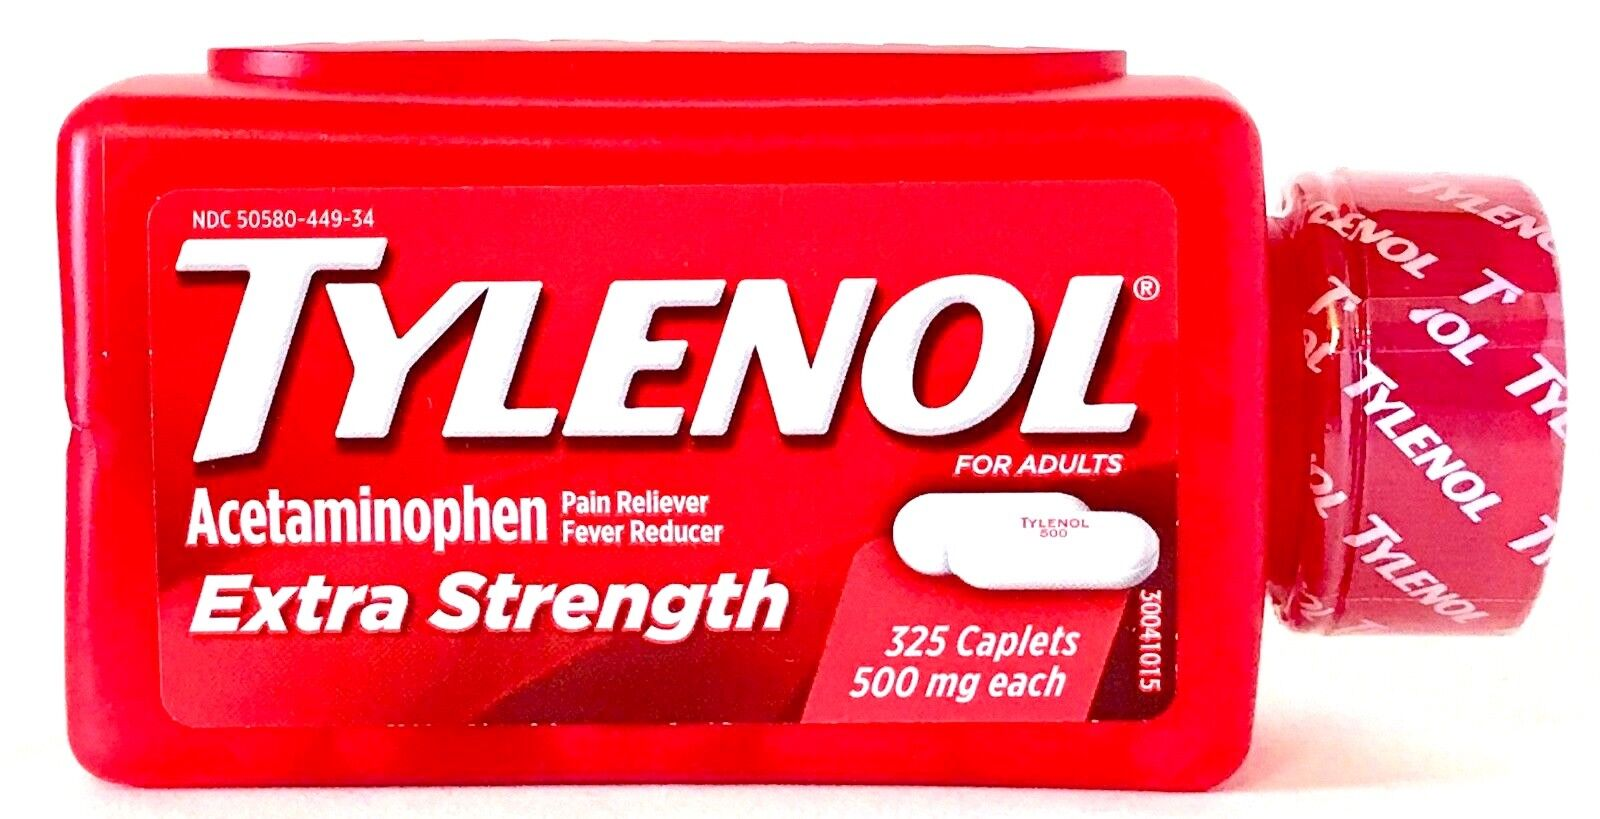 TYLENOL 325 CAPLETS EXTRA STRENGTH 500 mg ACETAMINOPHEN PAIN